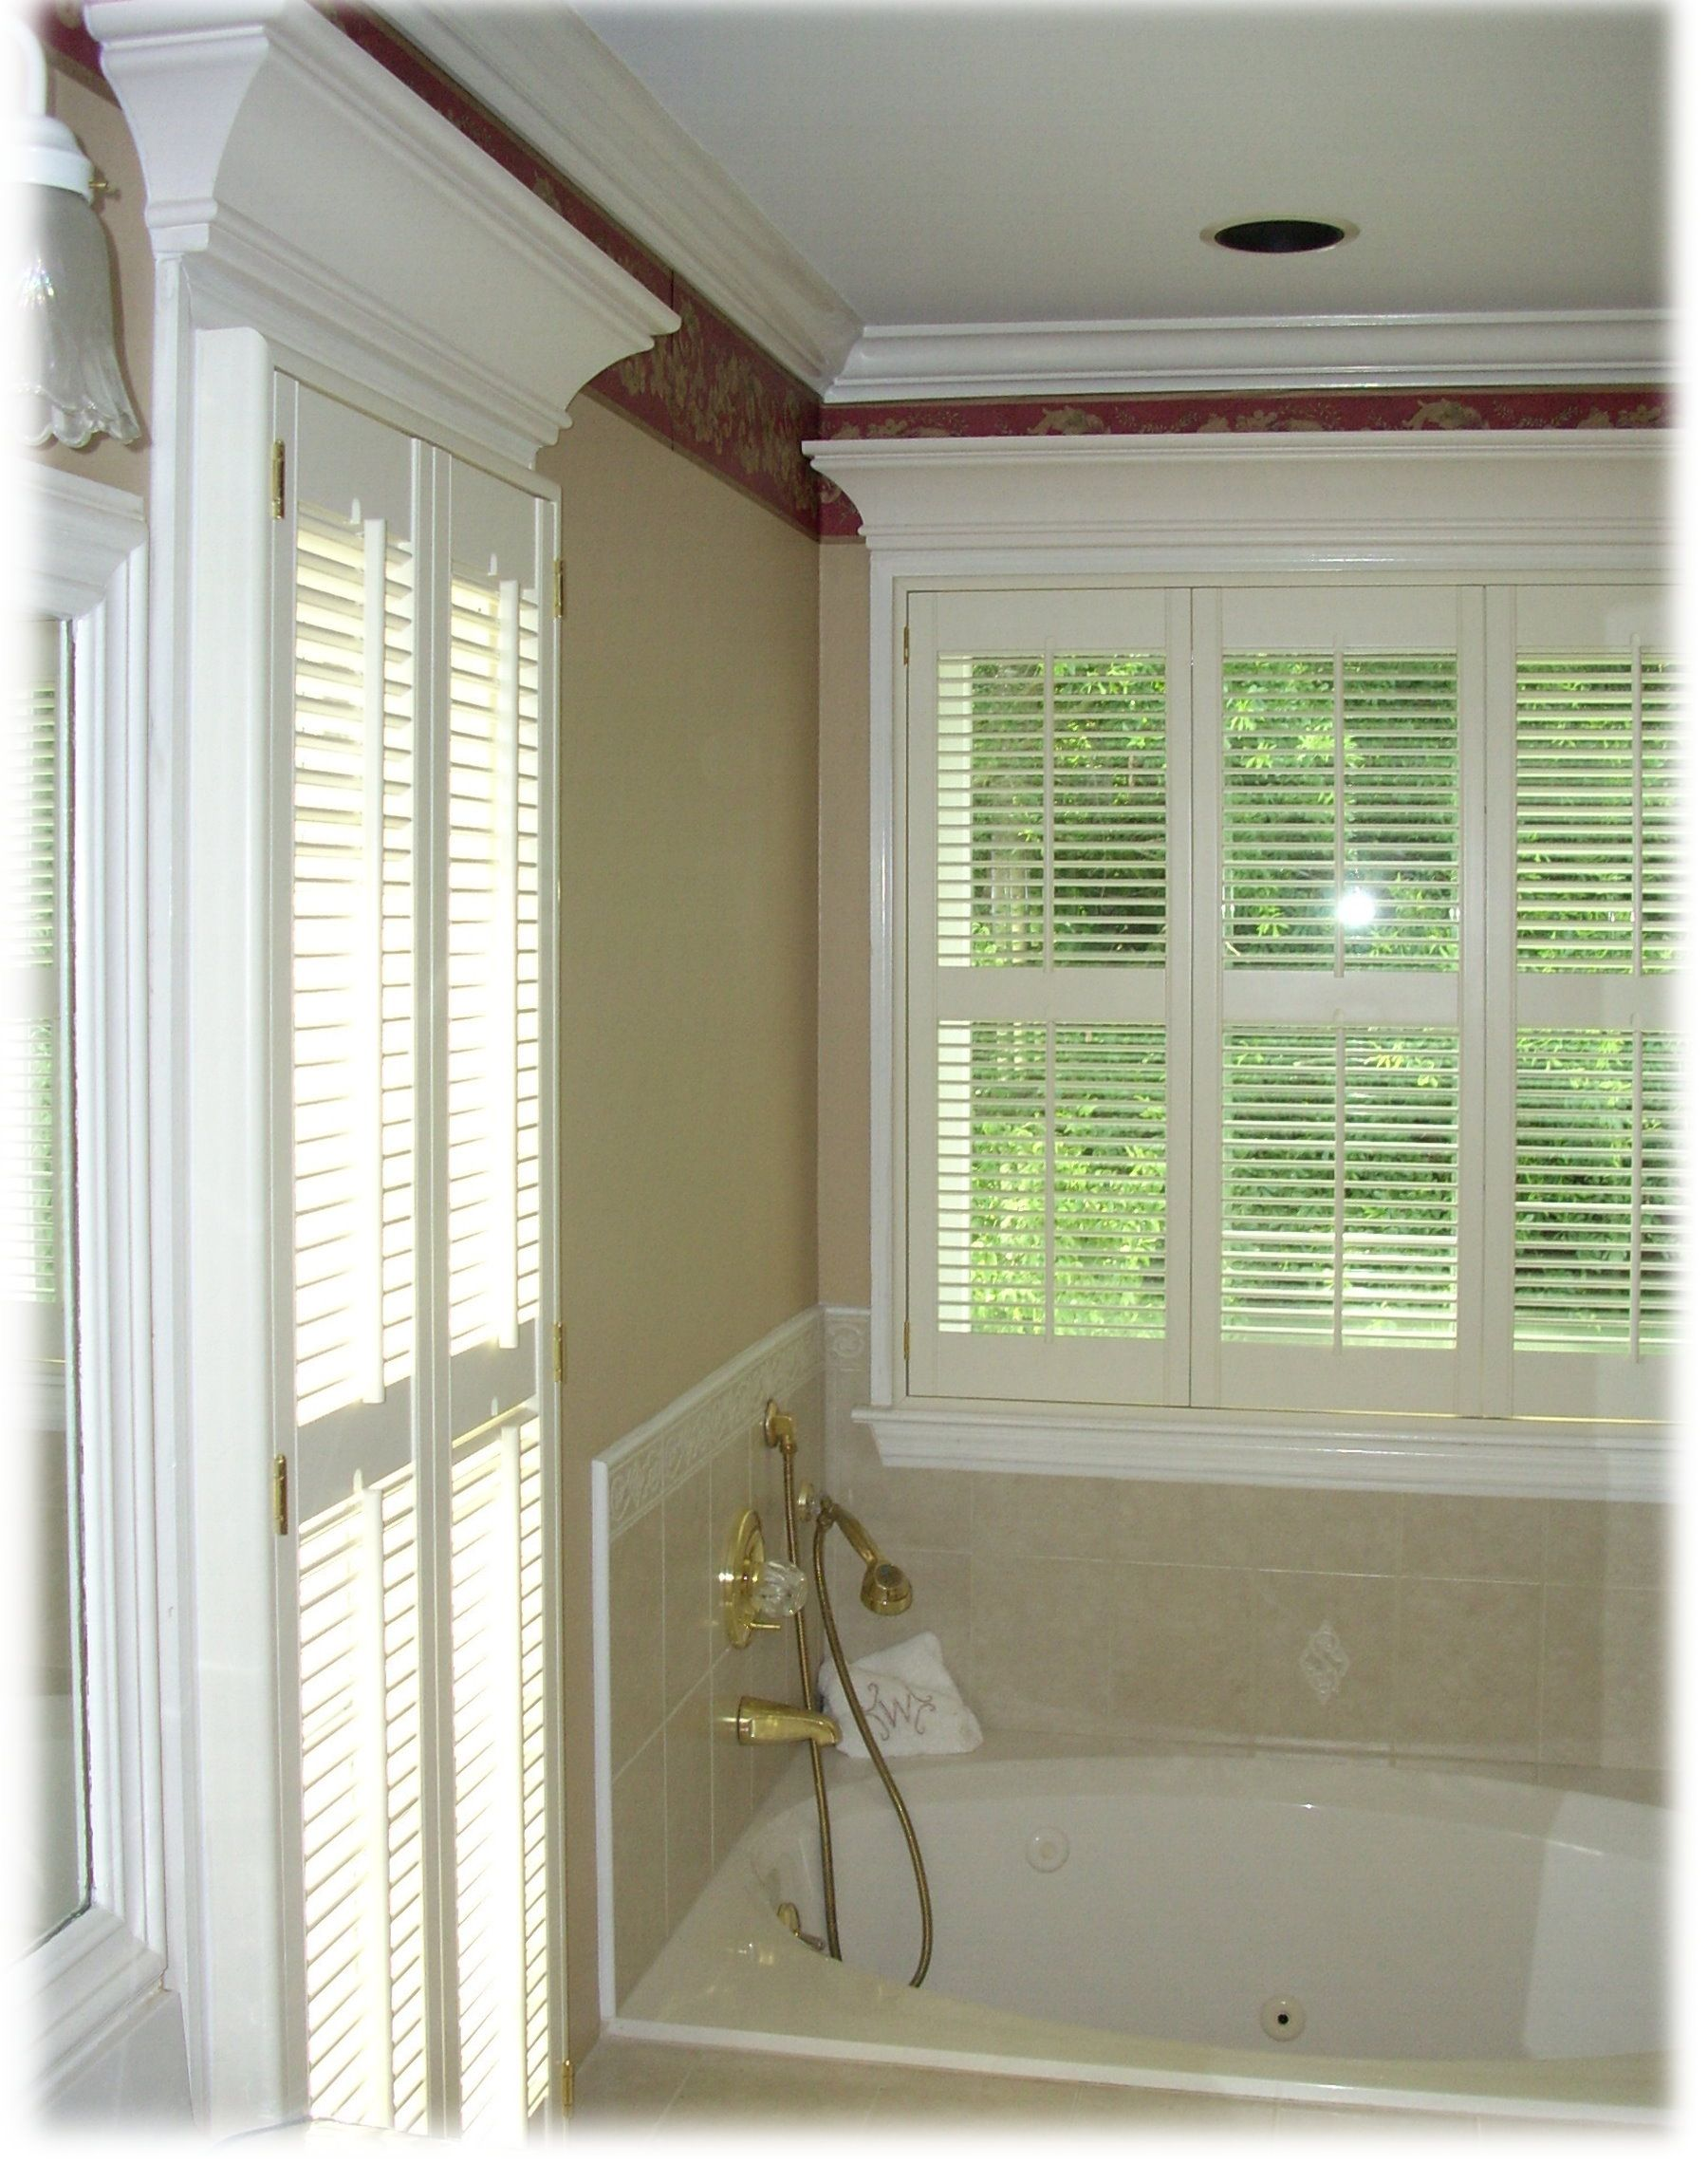 Bathroom privacy can be attained by covering shower windows with